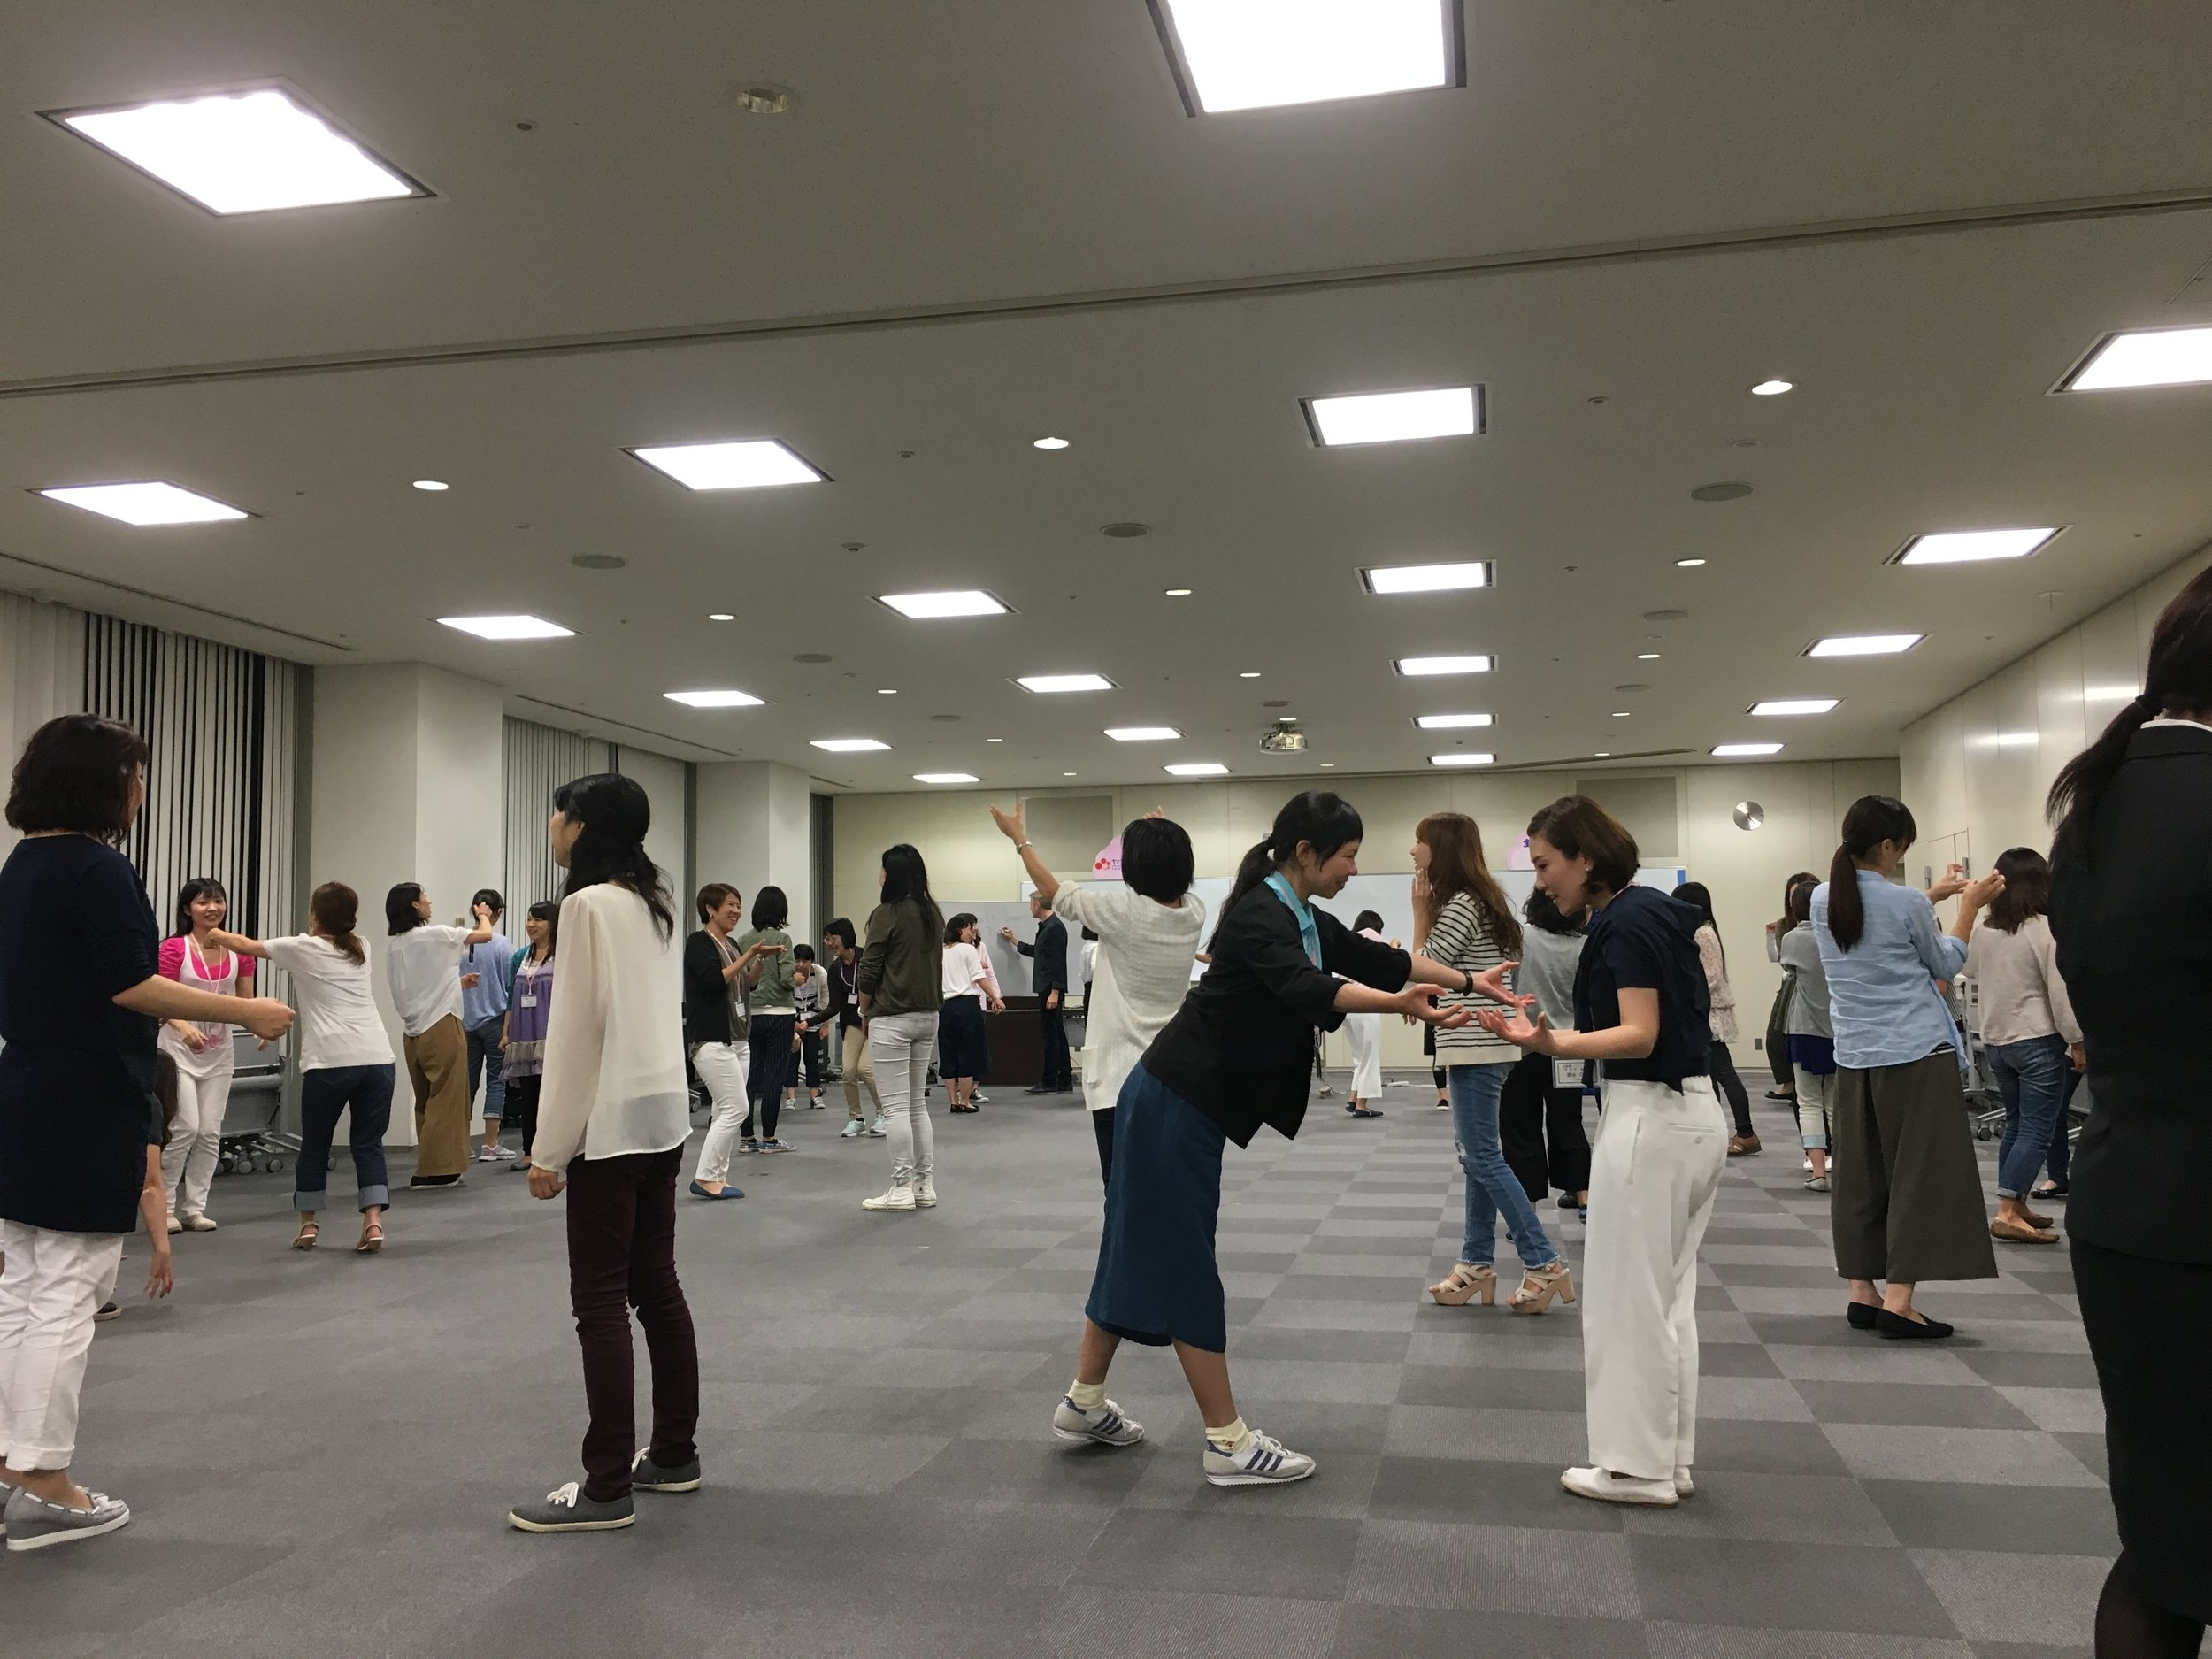 Workshop for Yamaha Corp for 70 teachers on retreat, focusing on communication and cooperative learning.